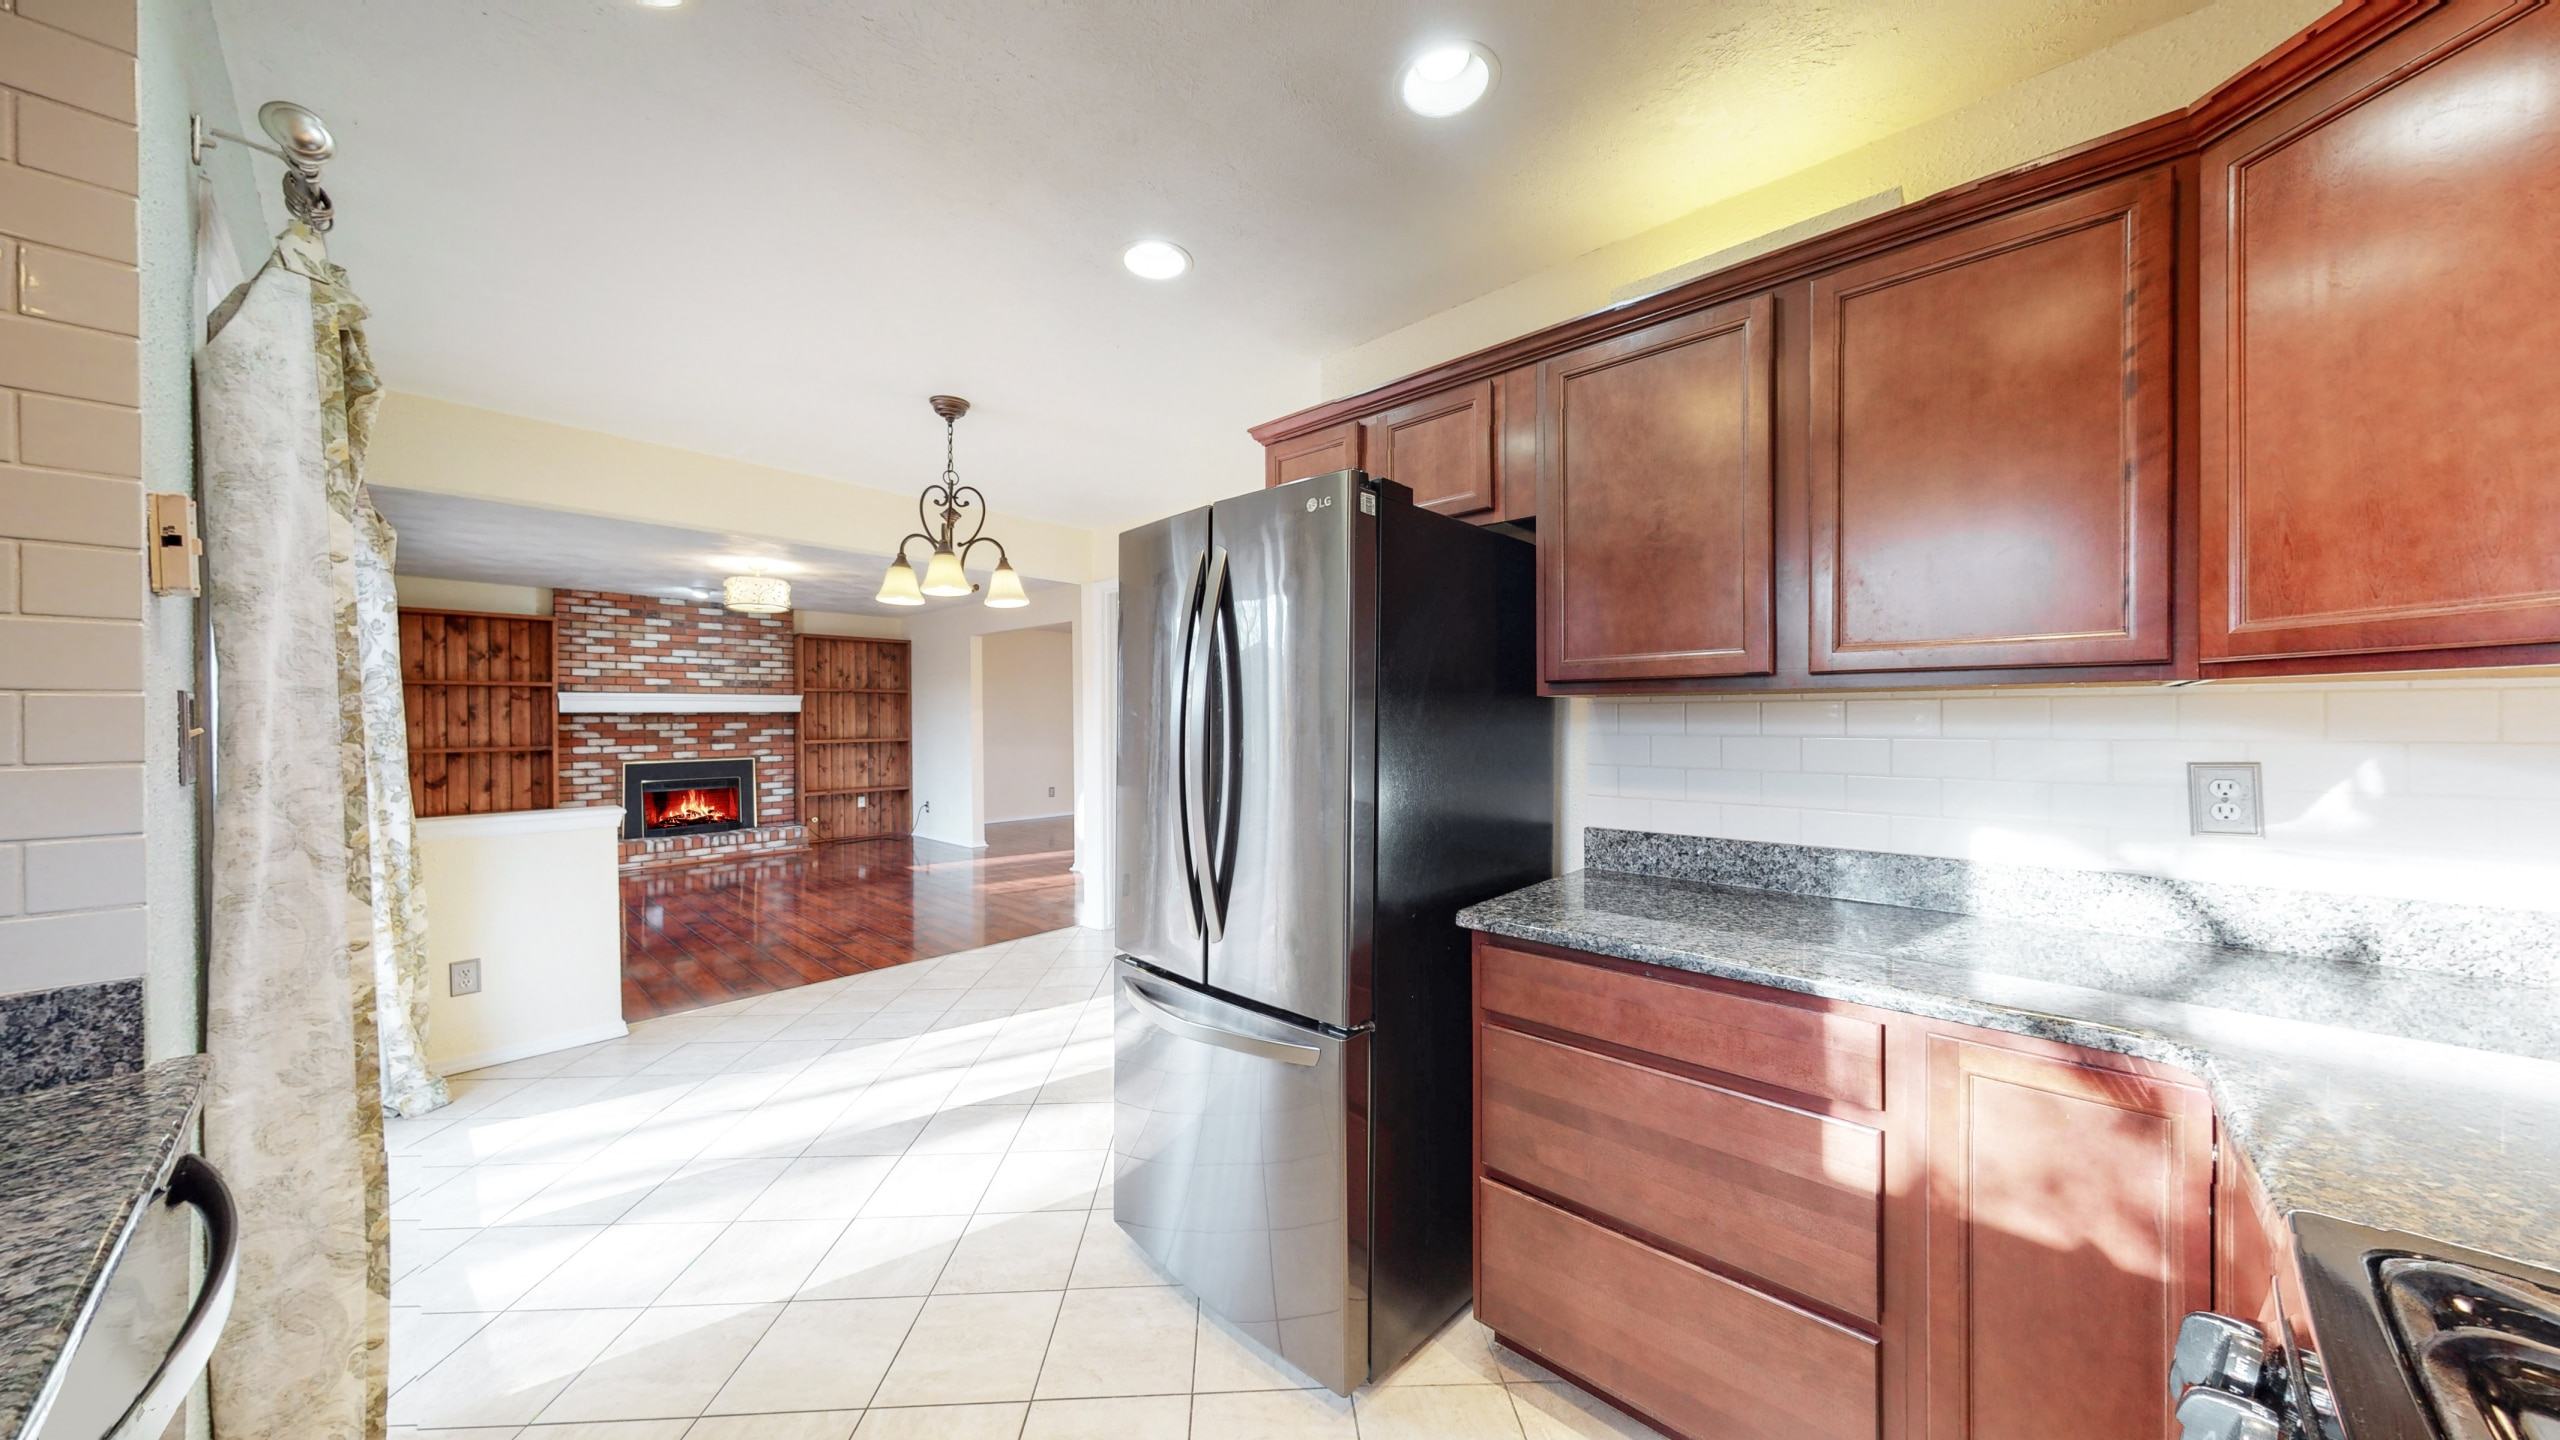 Brighton Home For Sale Kitchen, Stainless refrigerator, fireplace in background